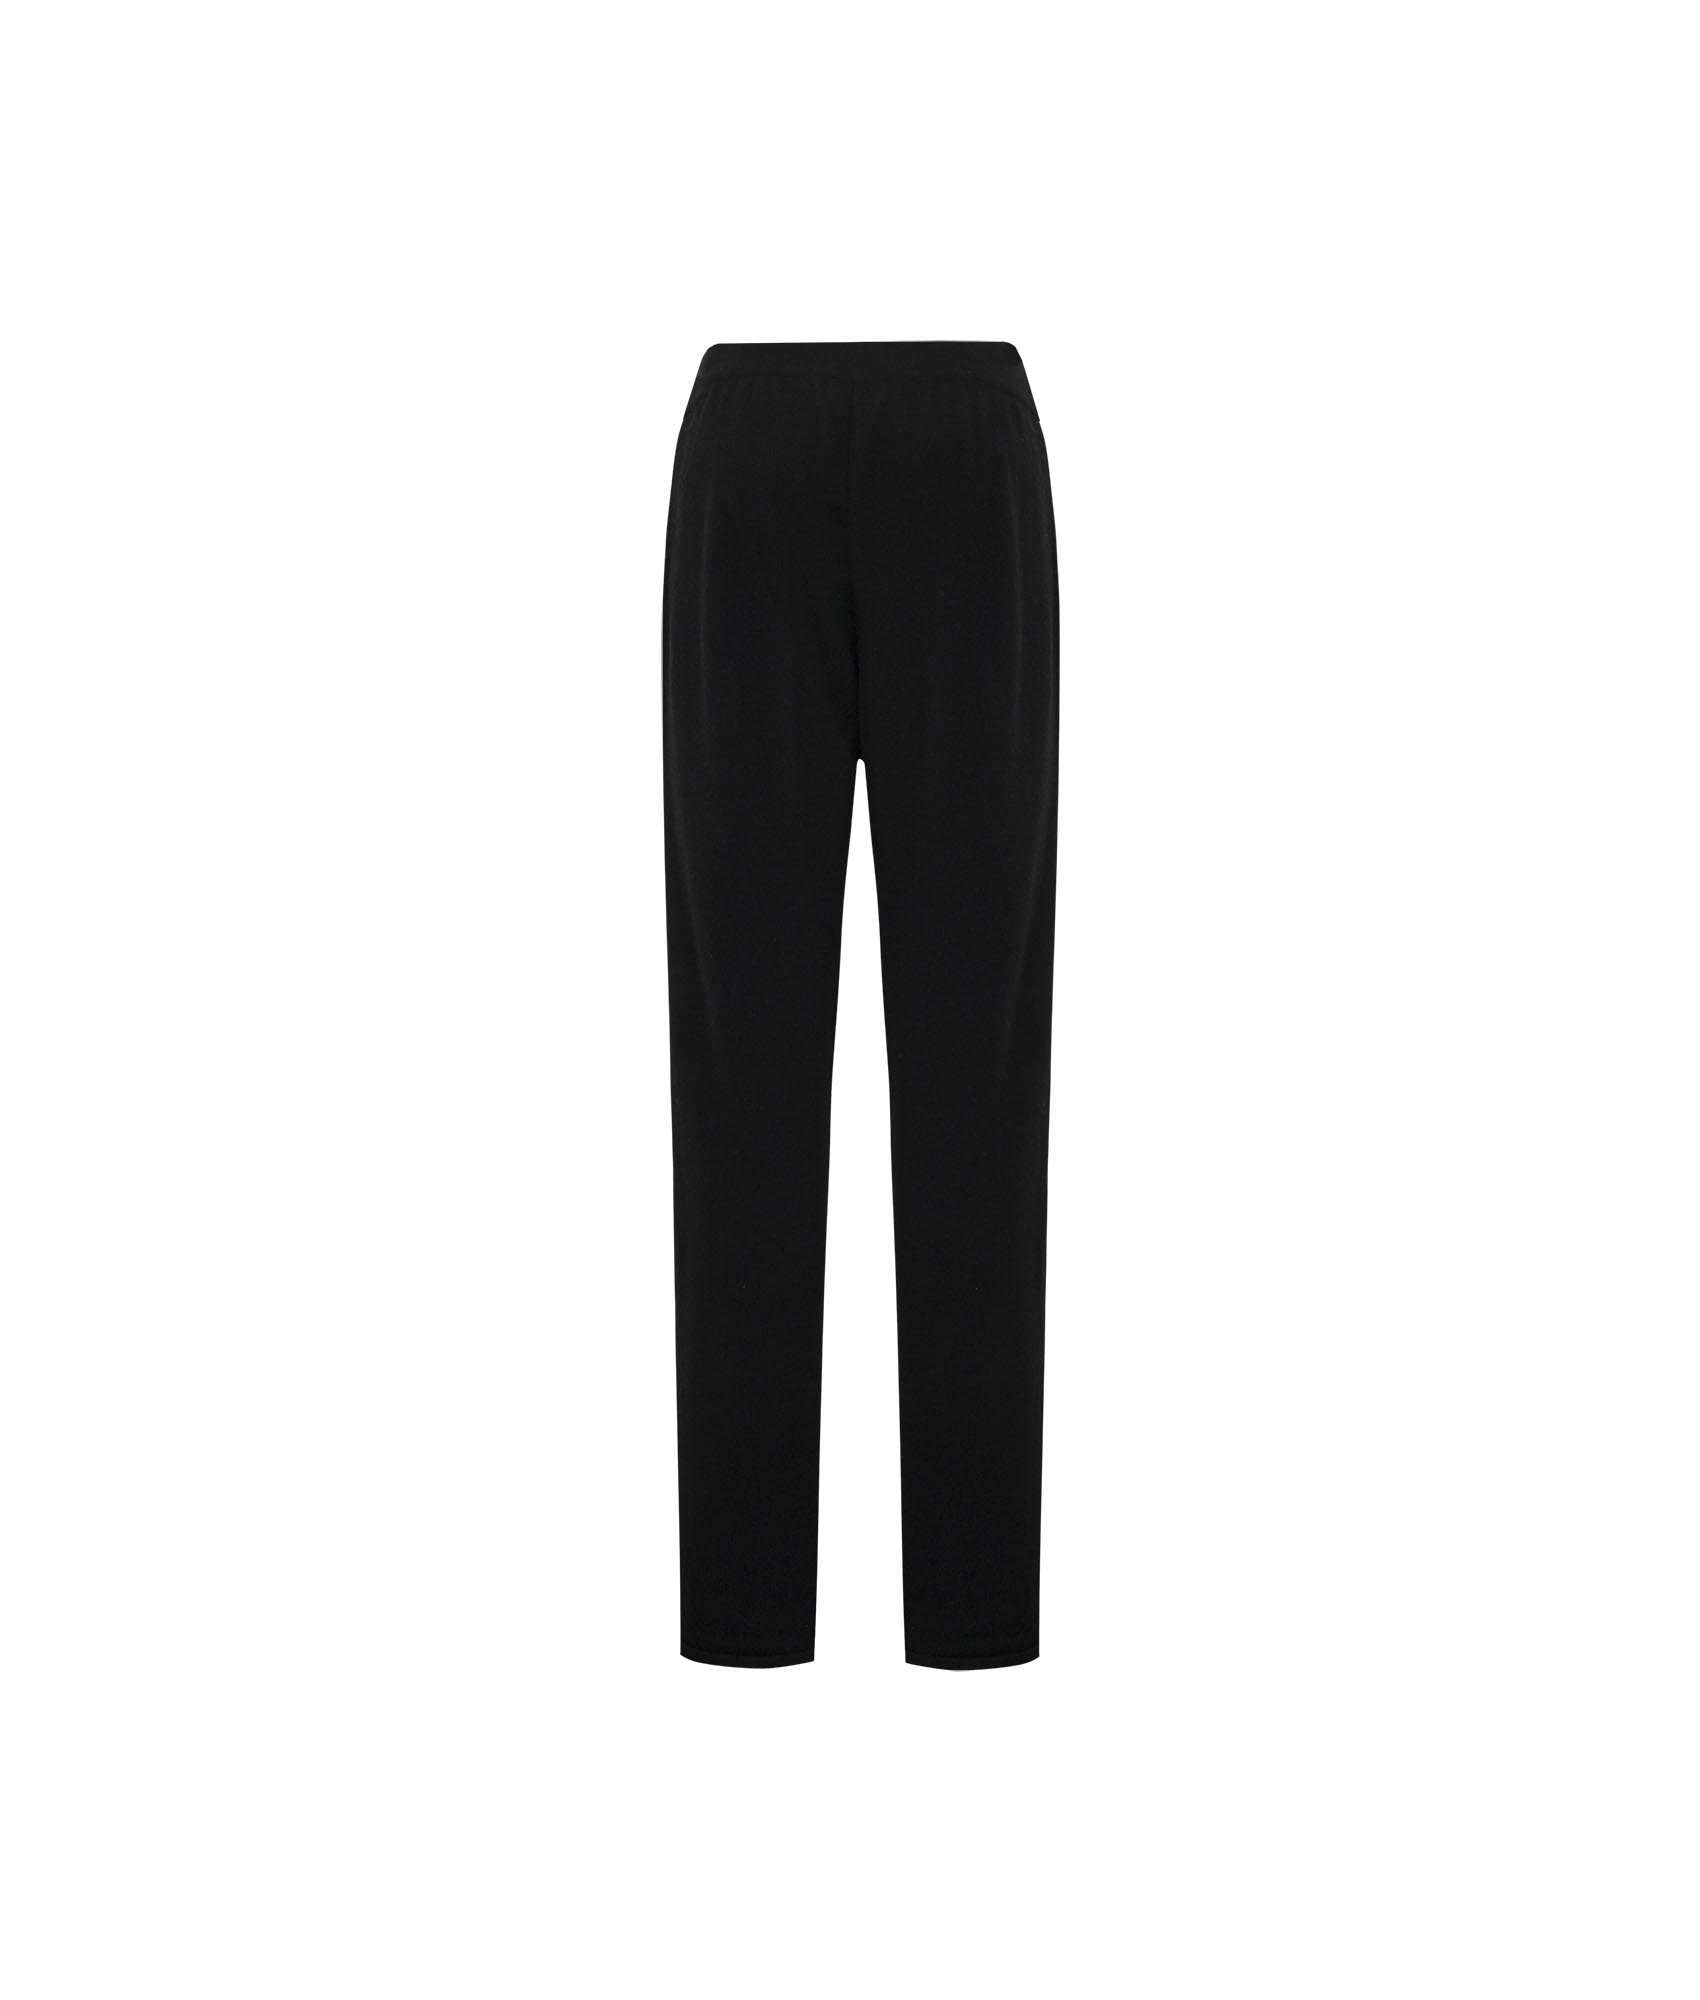 JENNIFER JOANOU New York | Bedford Pants